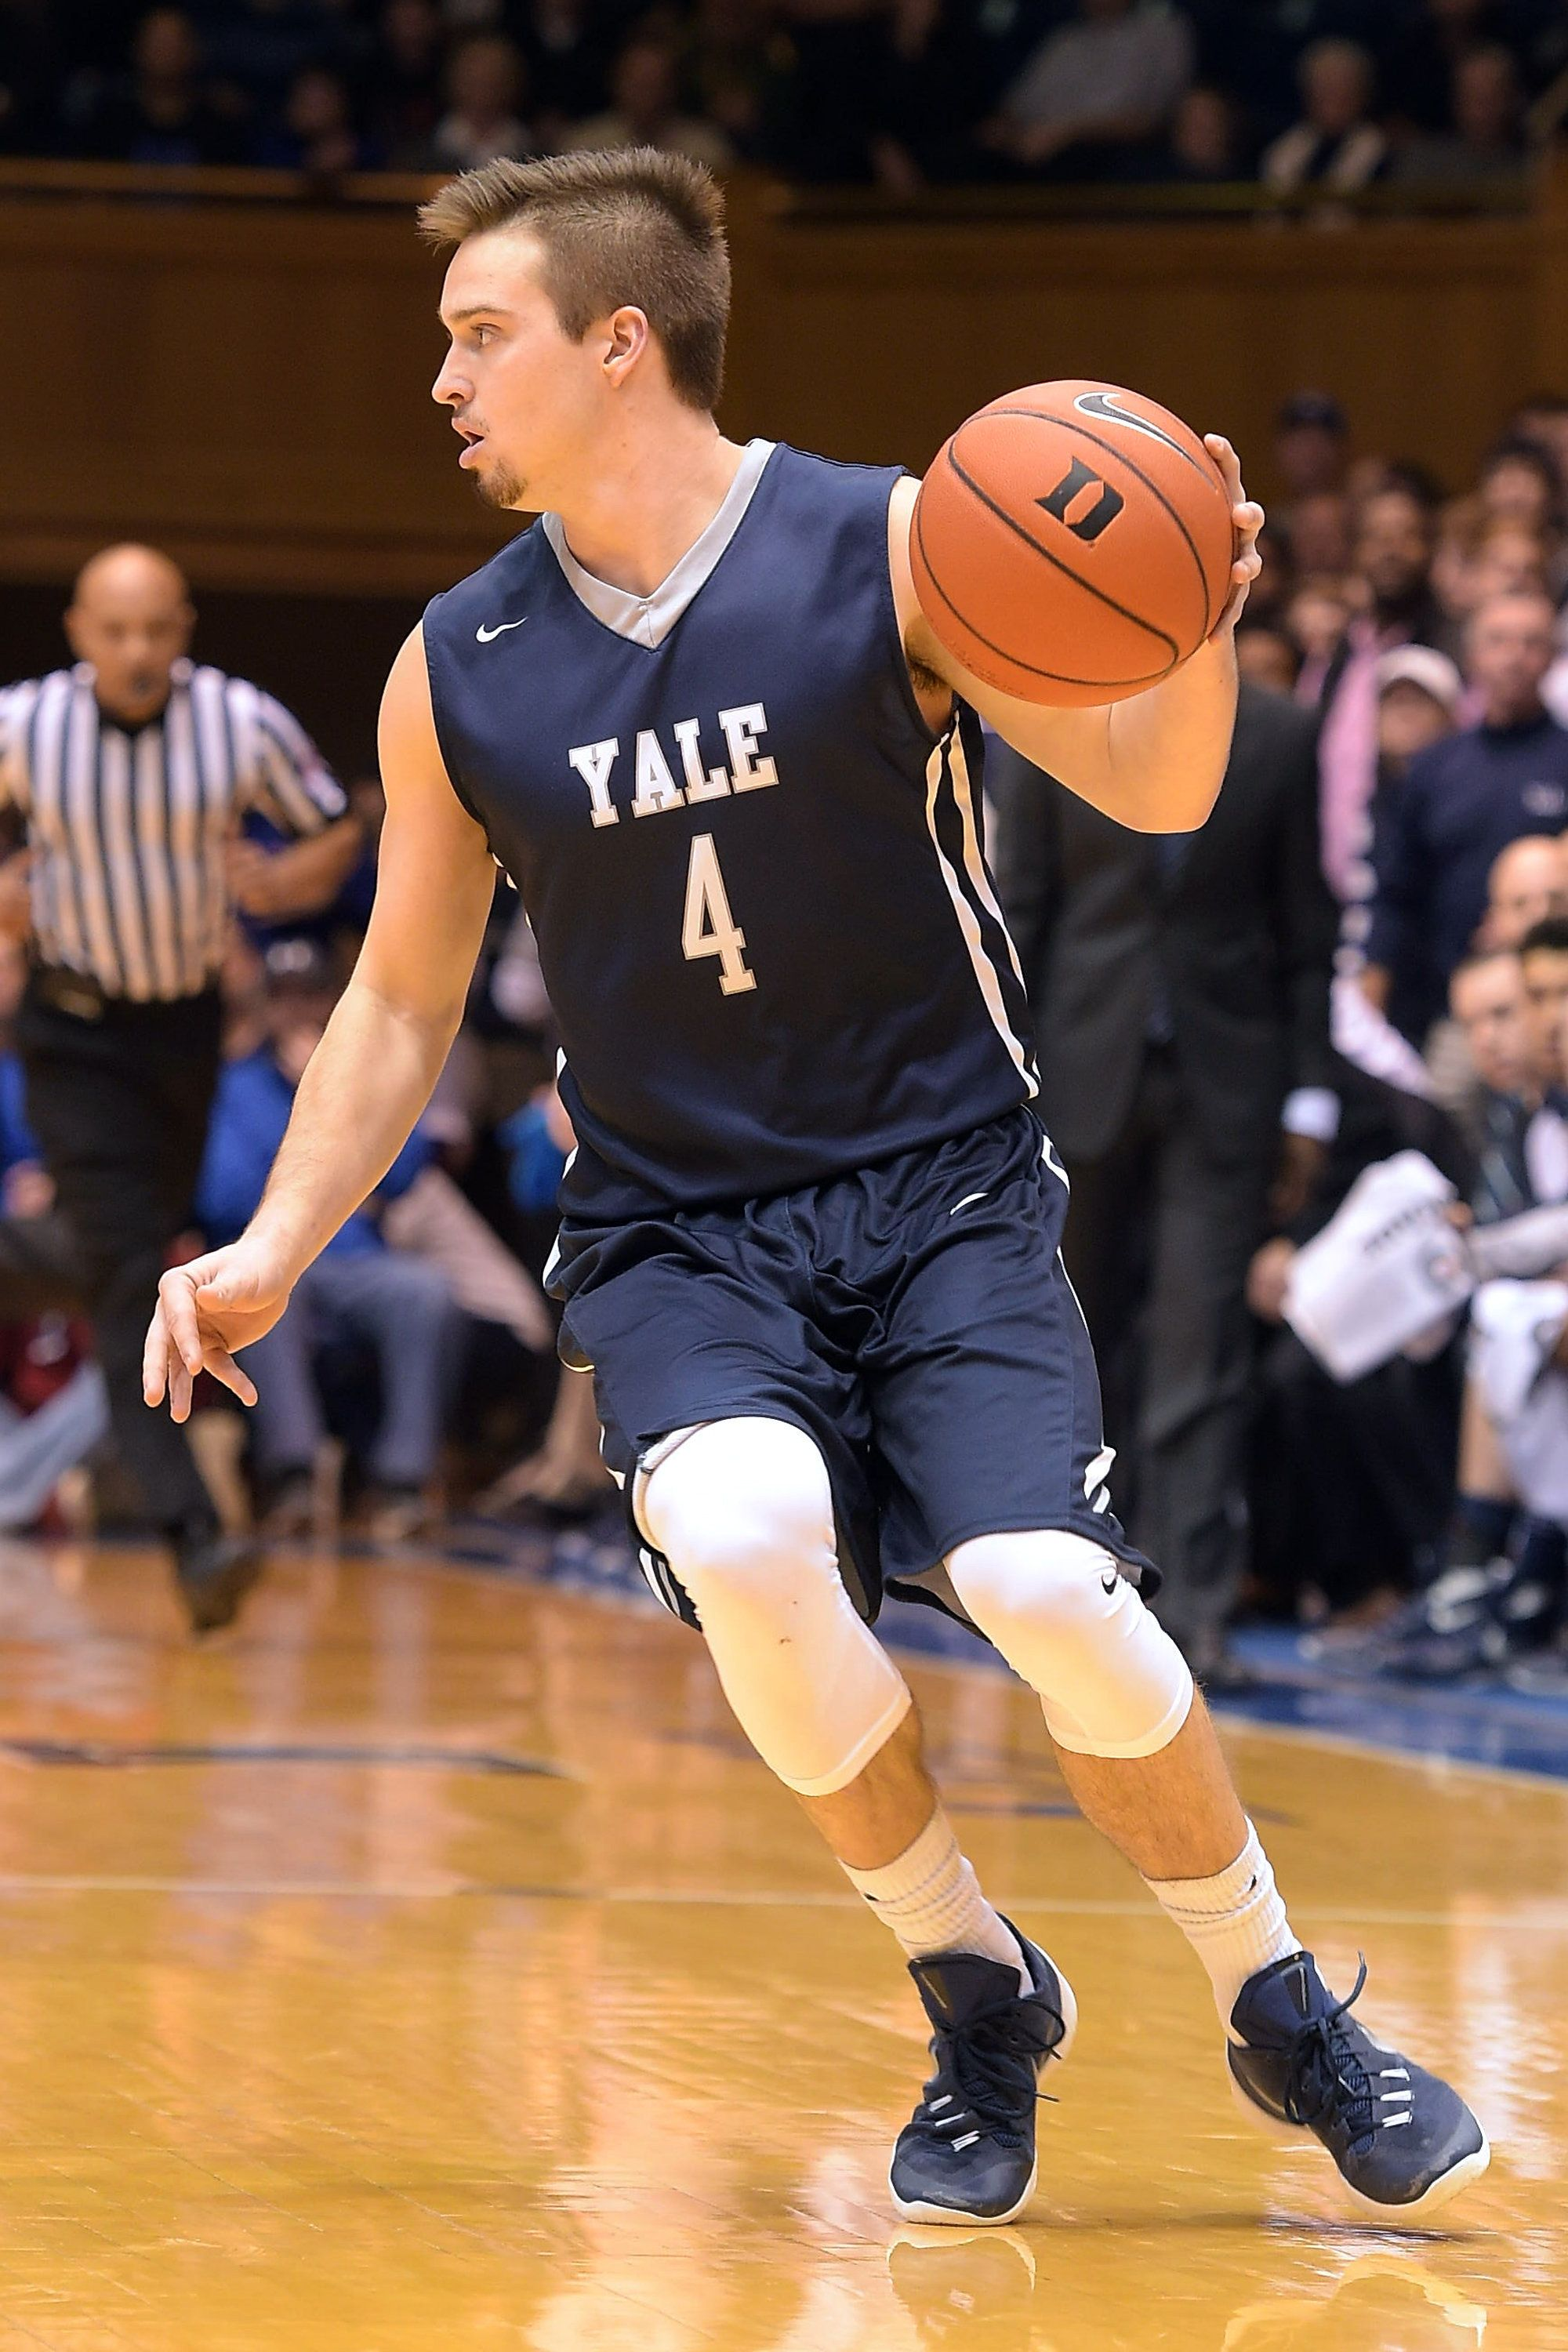 DURHAM, NC - NOVEMBER 25: Jack Montague #4 of the Yale Bulldogs moves the ball against the Duke Blue Devils at Cameron Indoor Stadium on November 25, 2015 in Durham, North Carolina. Duke defeated Yale 80-61. (Photo by Lance King/Getty Images)